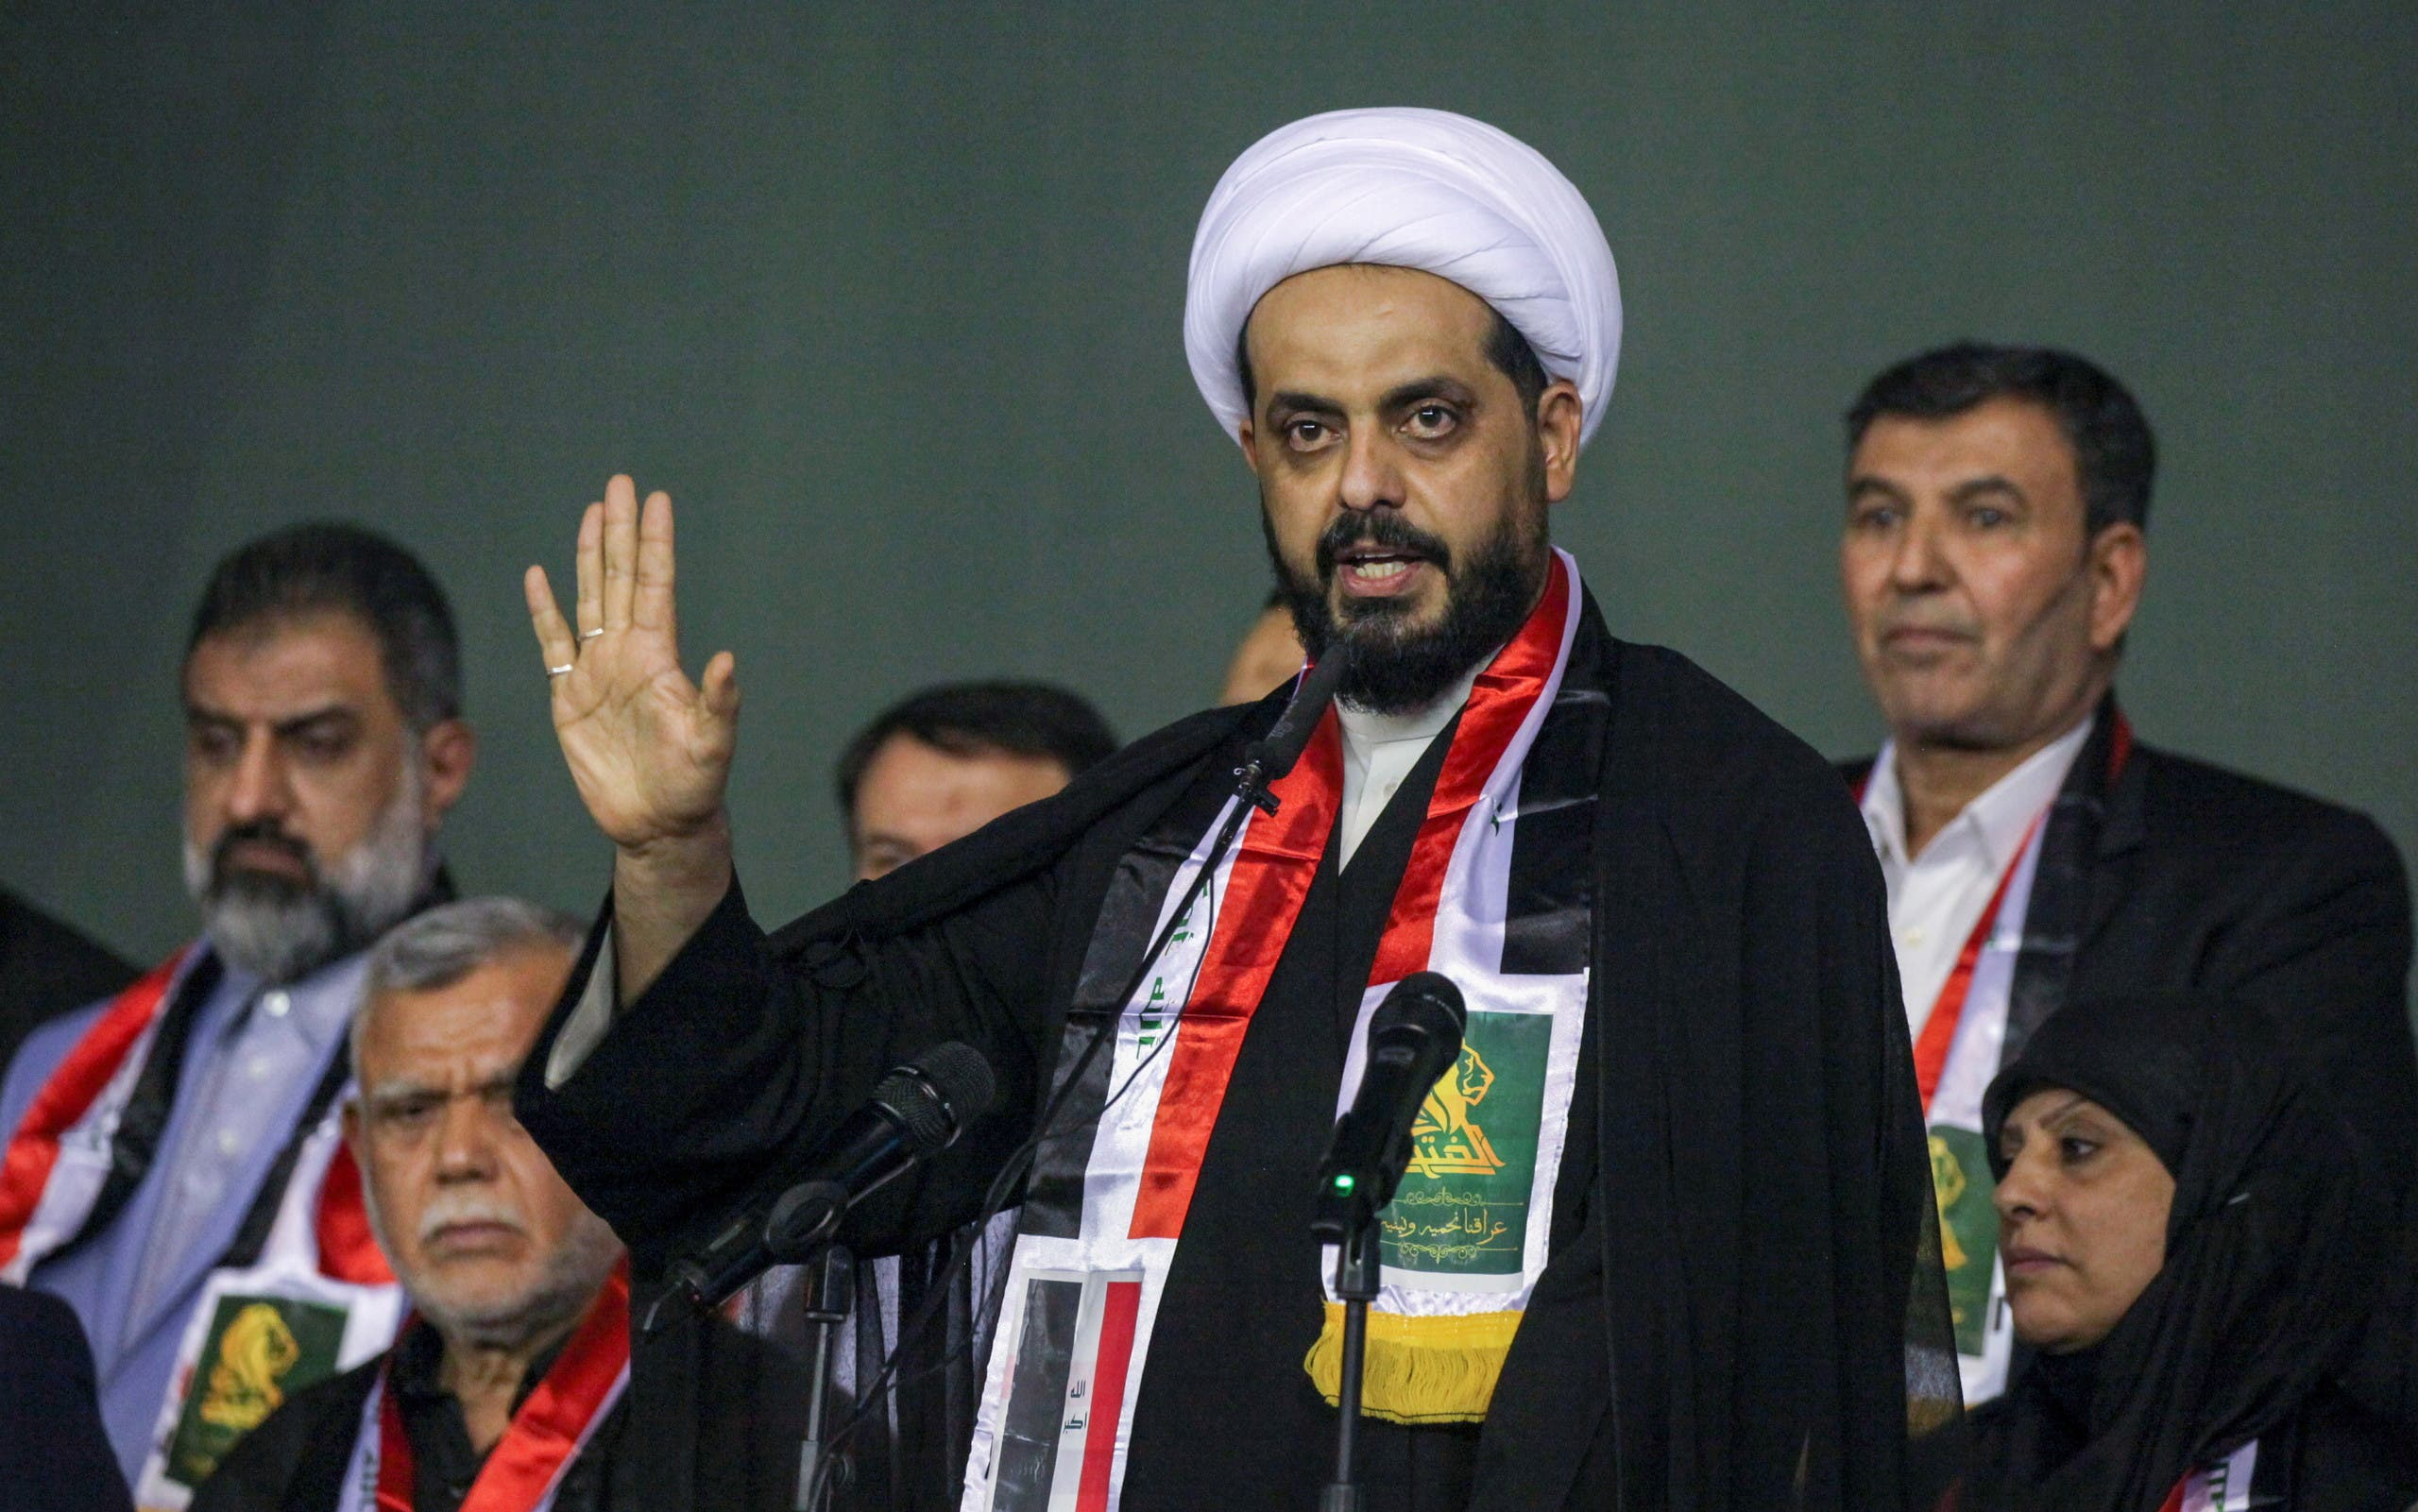 Qais al-Khazali, leader of the militant group Asaib Ahl al-Haq attends an election rally, ahead of the parliamentary election in Baghdad, Iraq October 5, 2021. (Reuters)